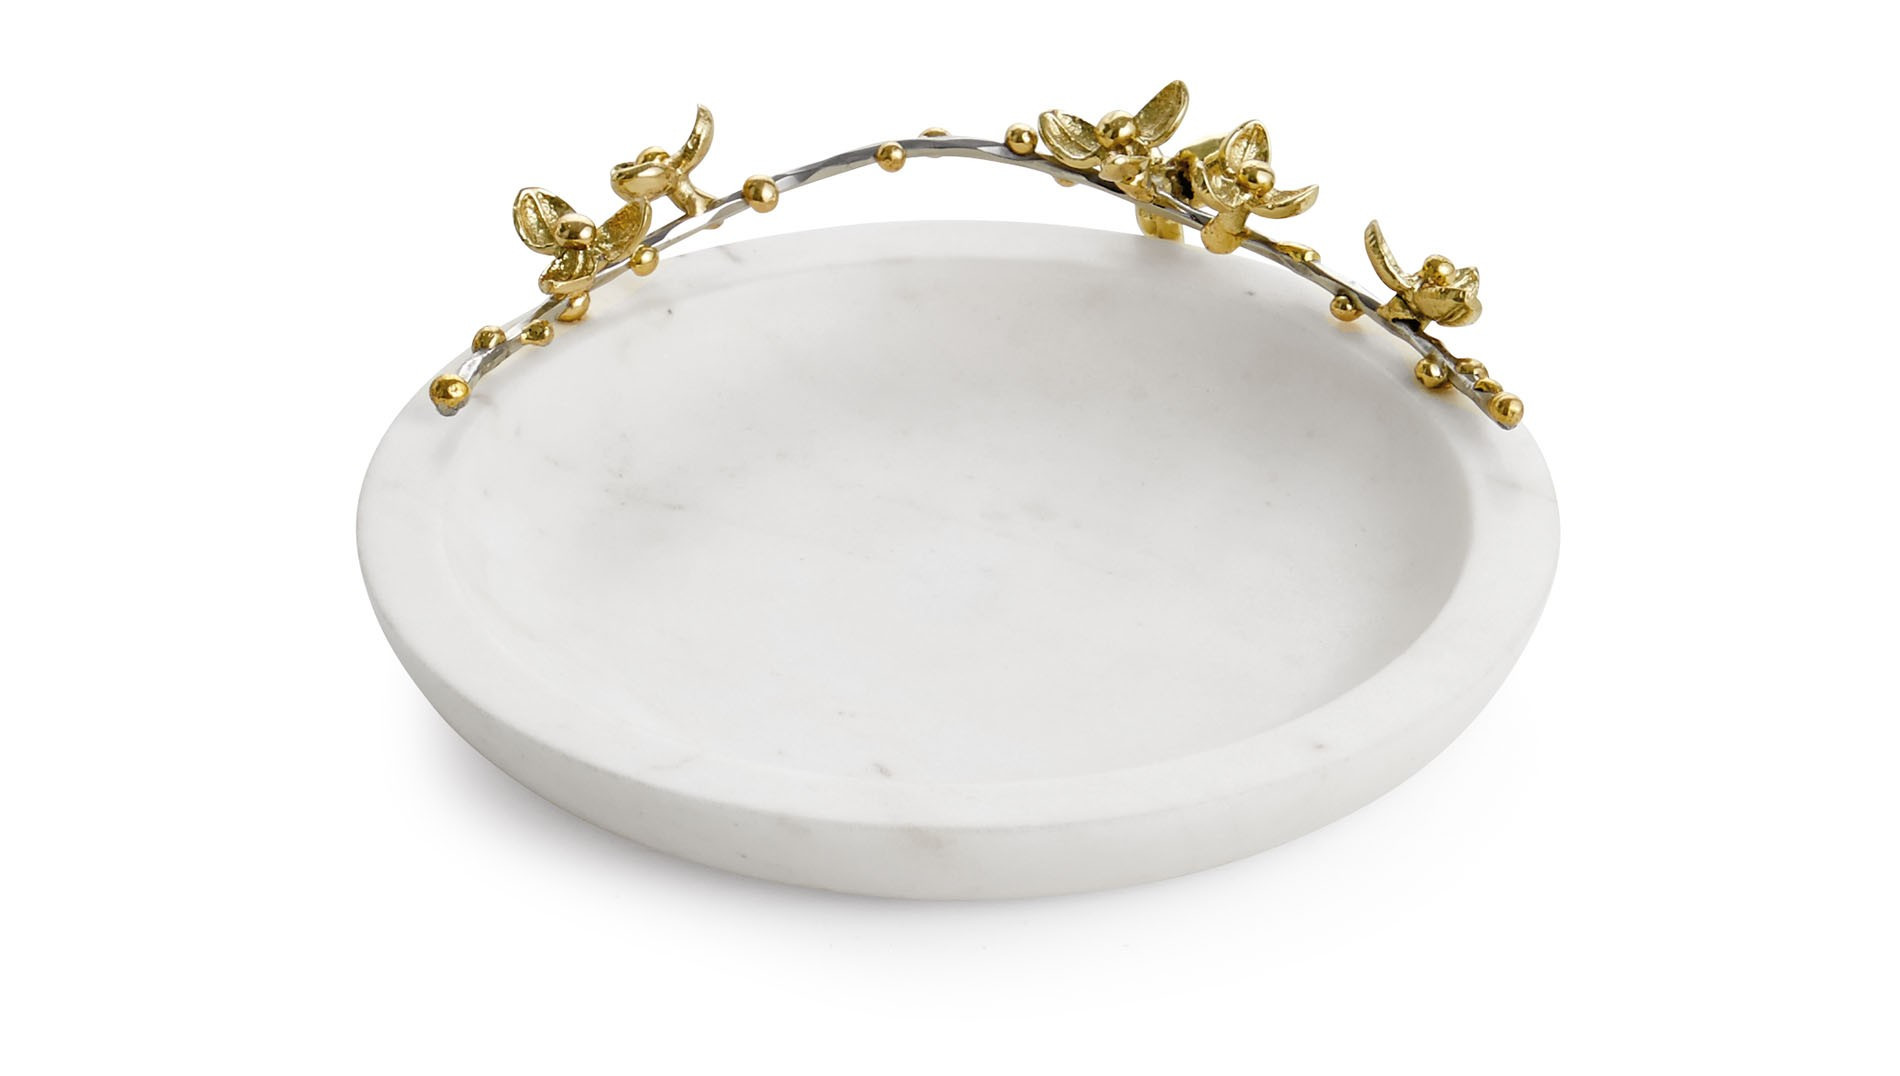 Pearl Vase Fillers Michaels Of Designer Bowls Luxury Trays Decorative Accessories Luxdeco Com Intended for Michael Aram Bittersweet Trinket Tray Buy Online at Luxdeco